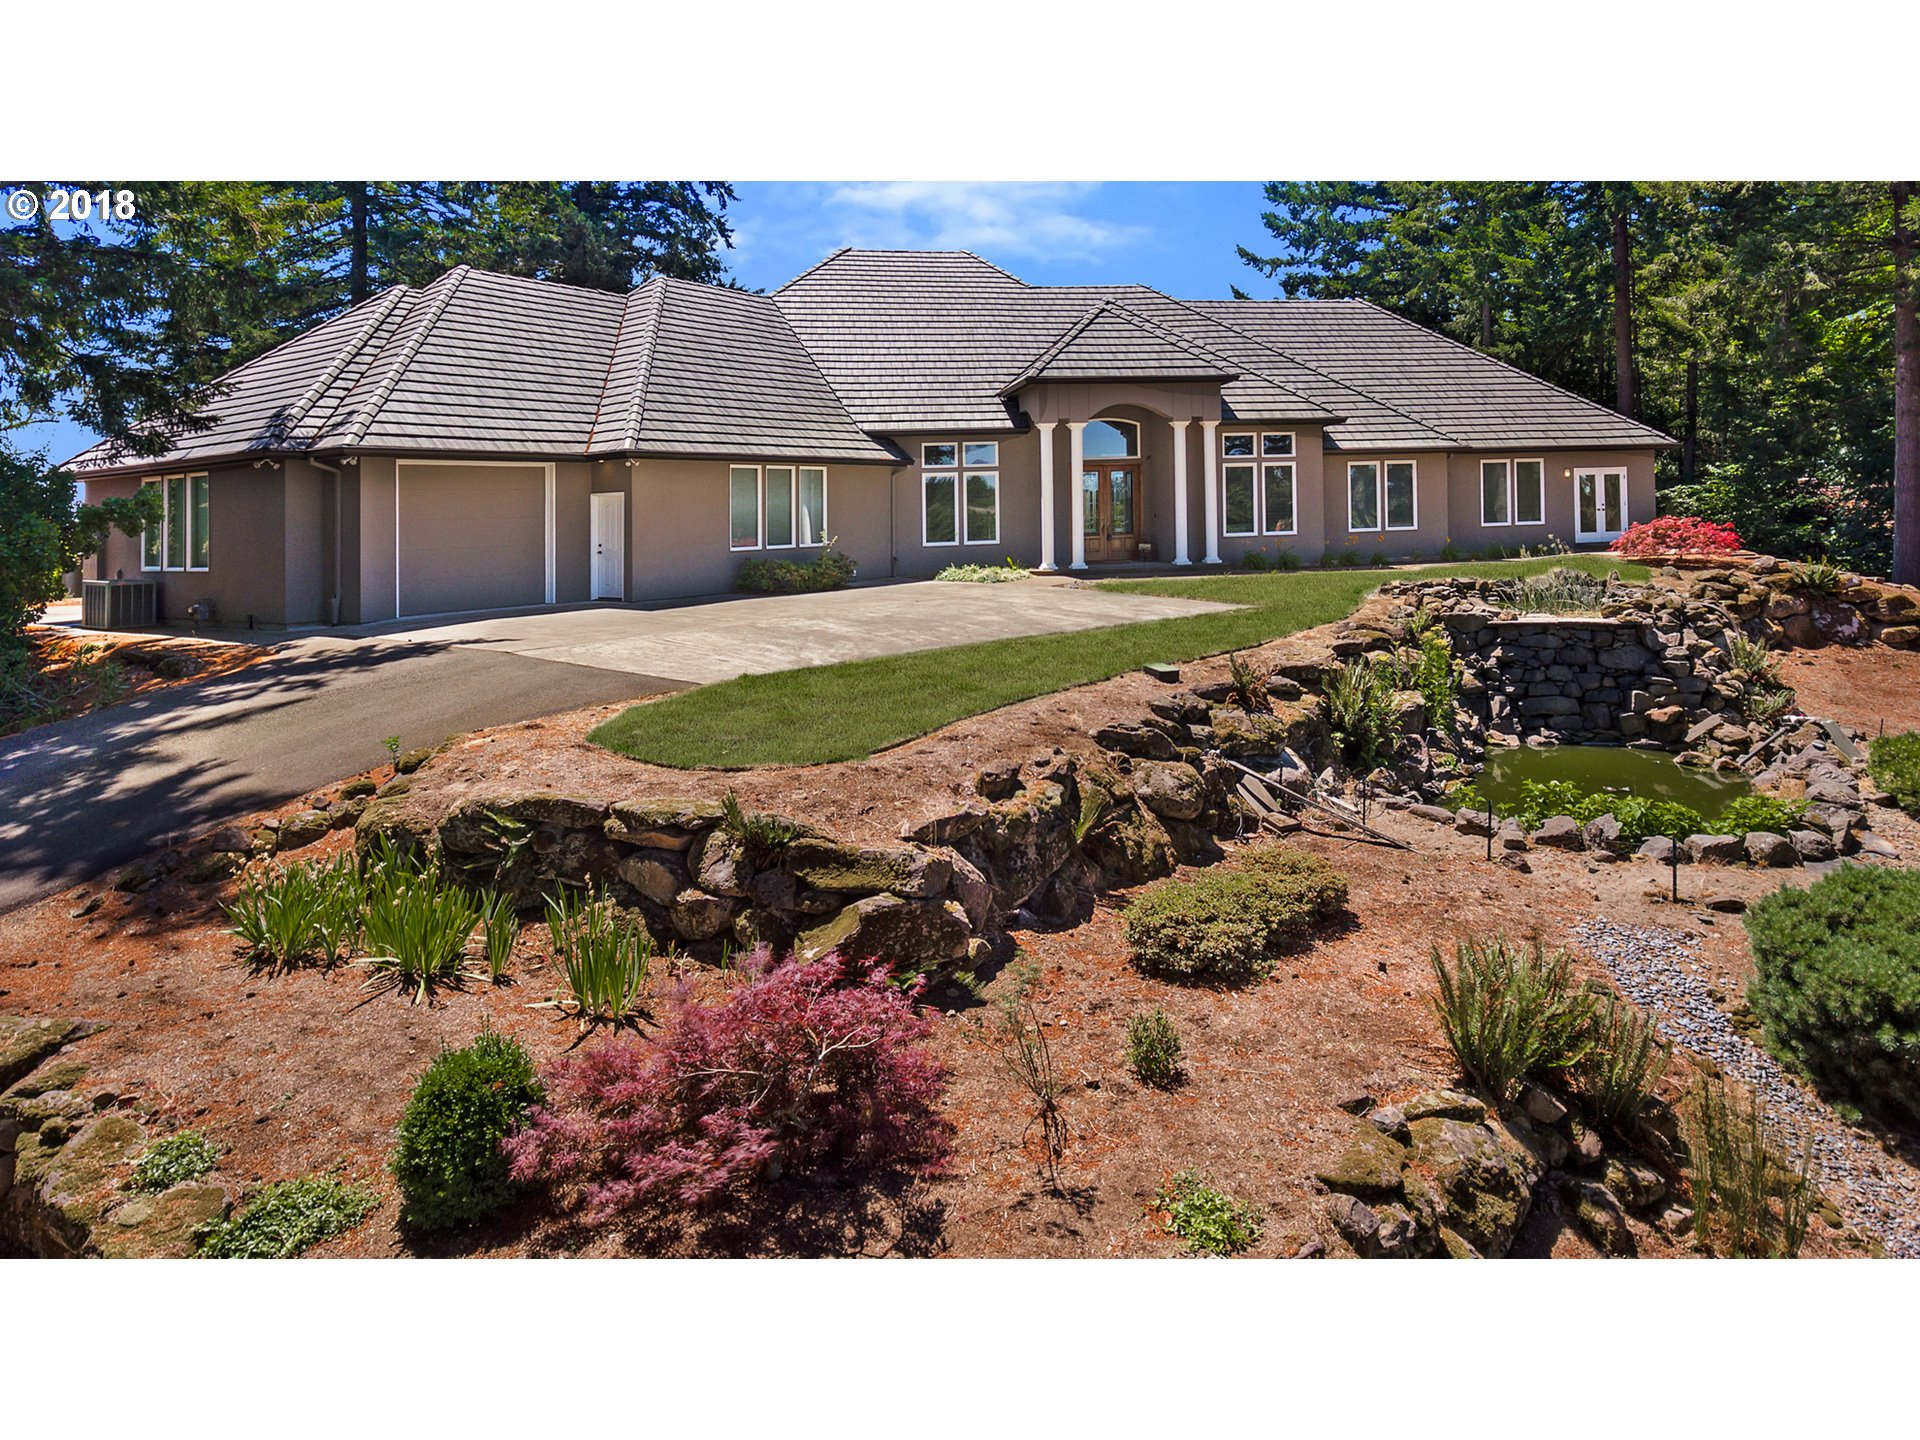 Happy Valley Homes: Listing Report | Burns & Olson Real Estate, Inc ...